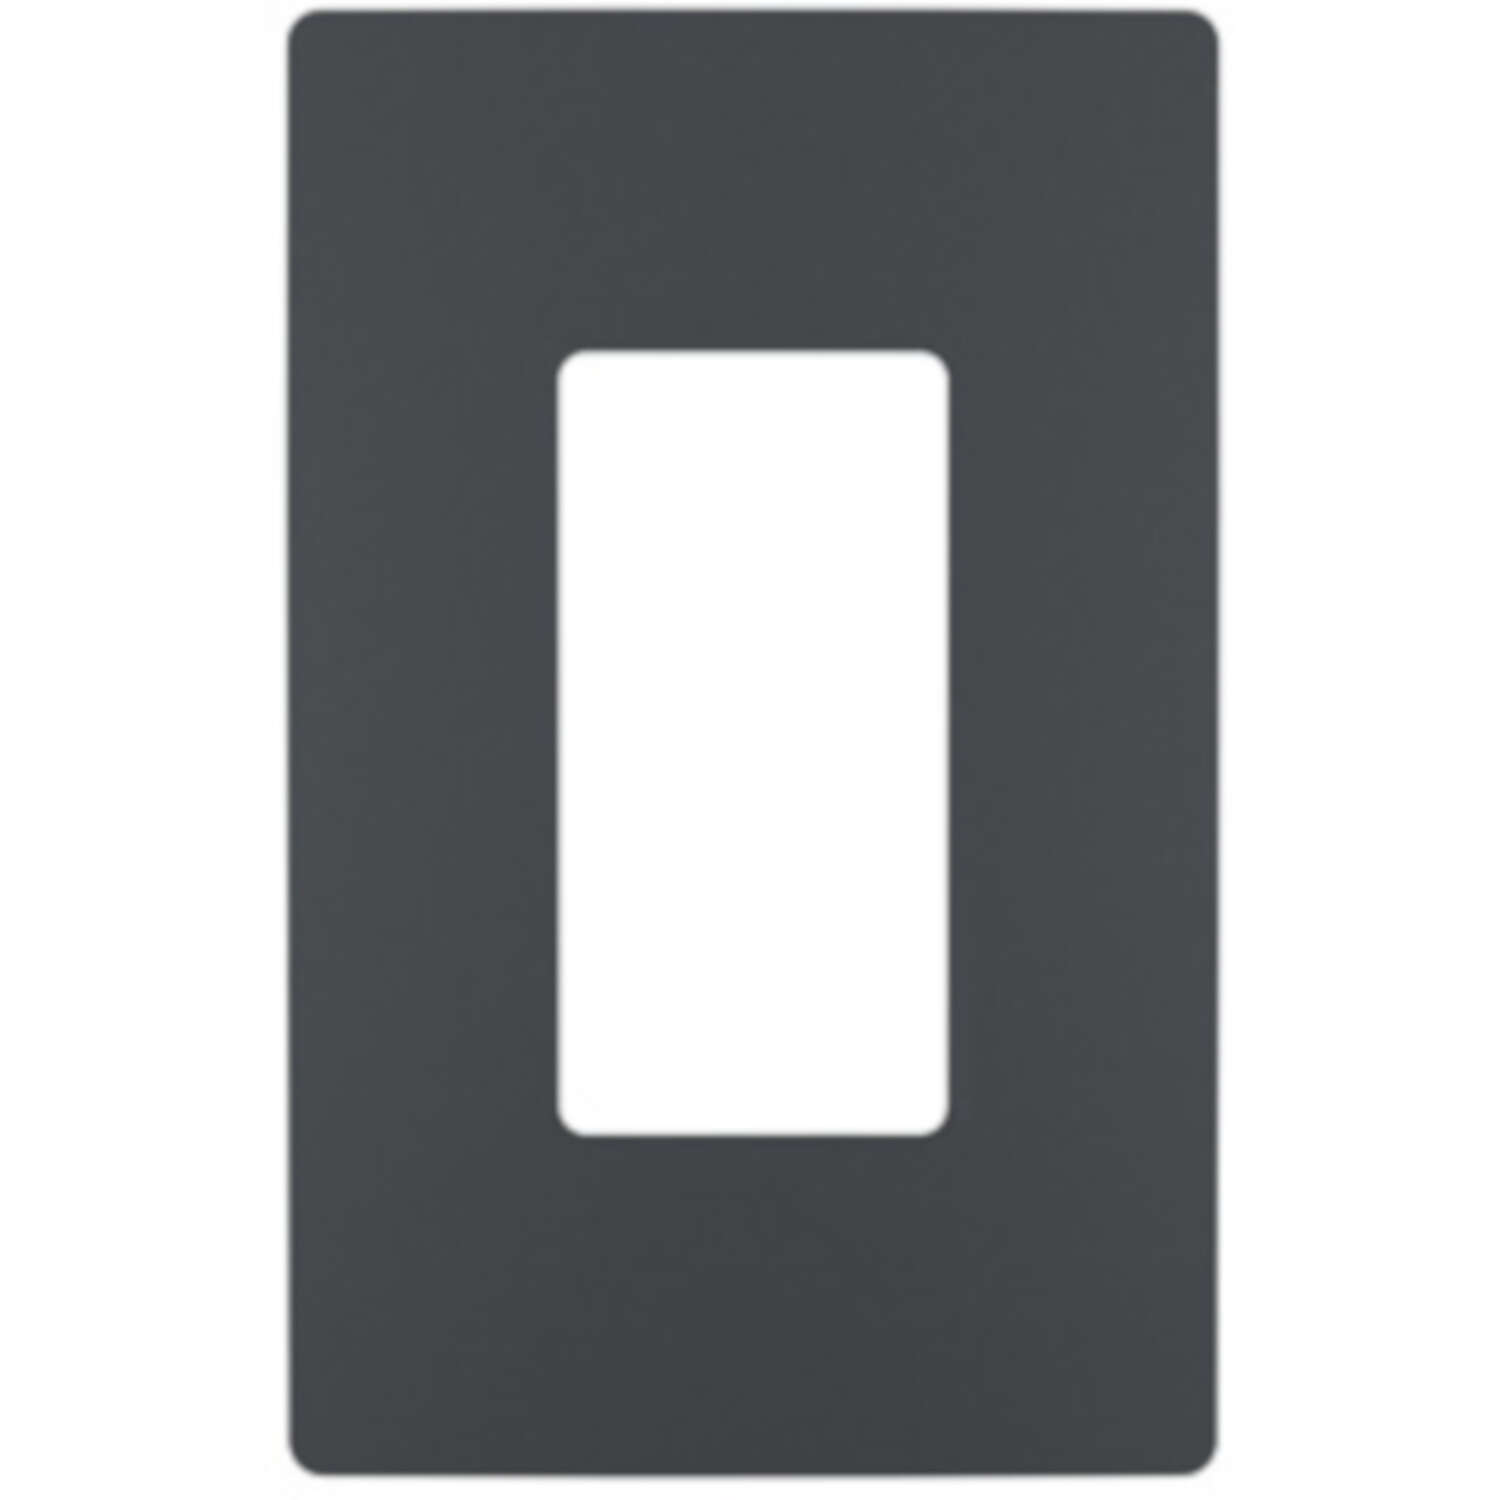 Legrand  Radiant  Graphite  1 gang Polycarbonate  Screwless  Wall Plate  1 pk